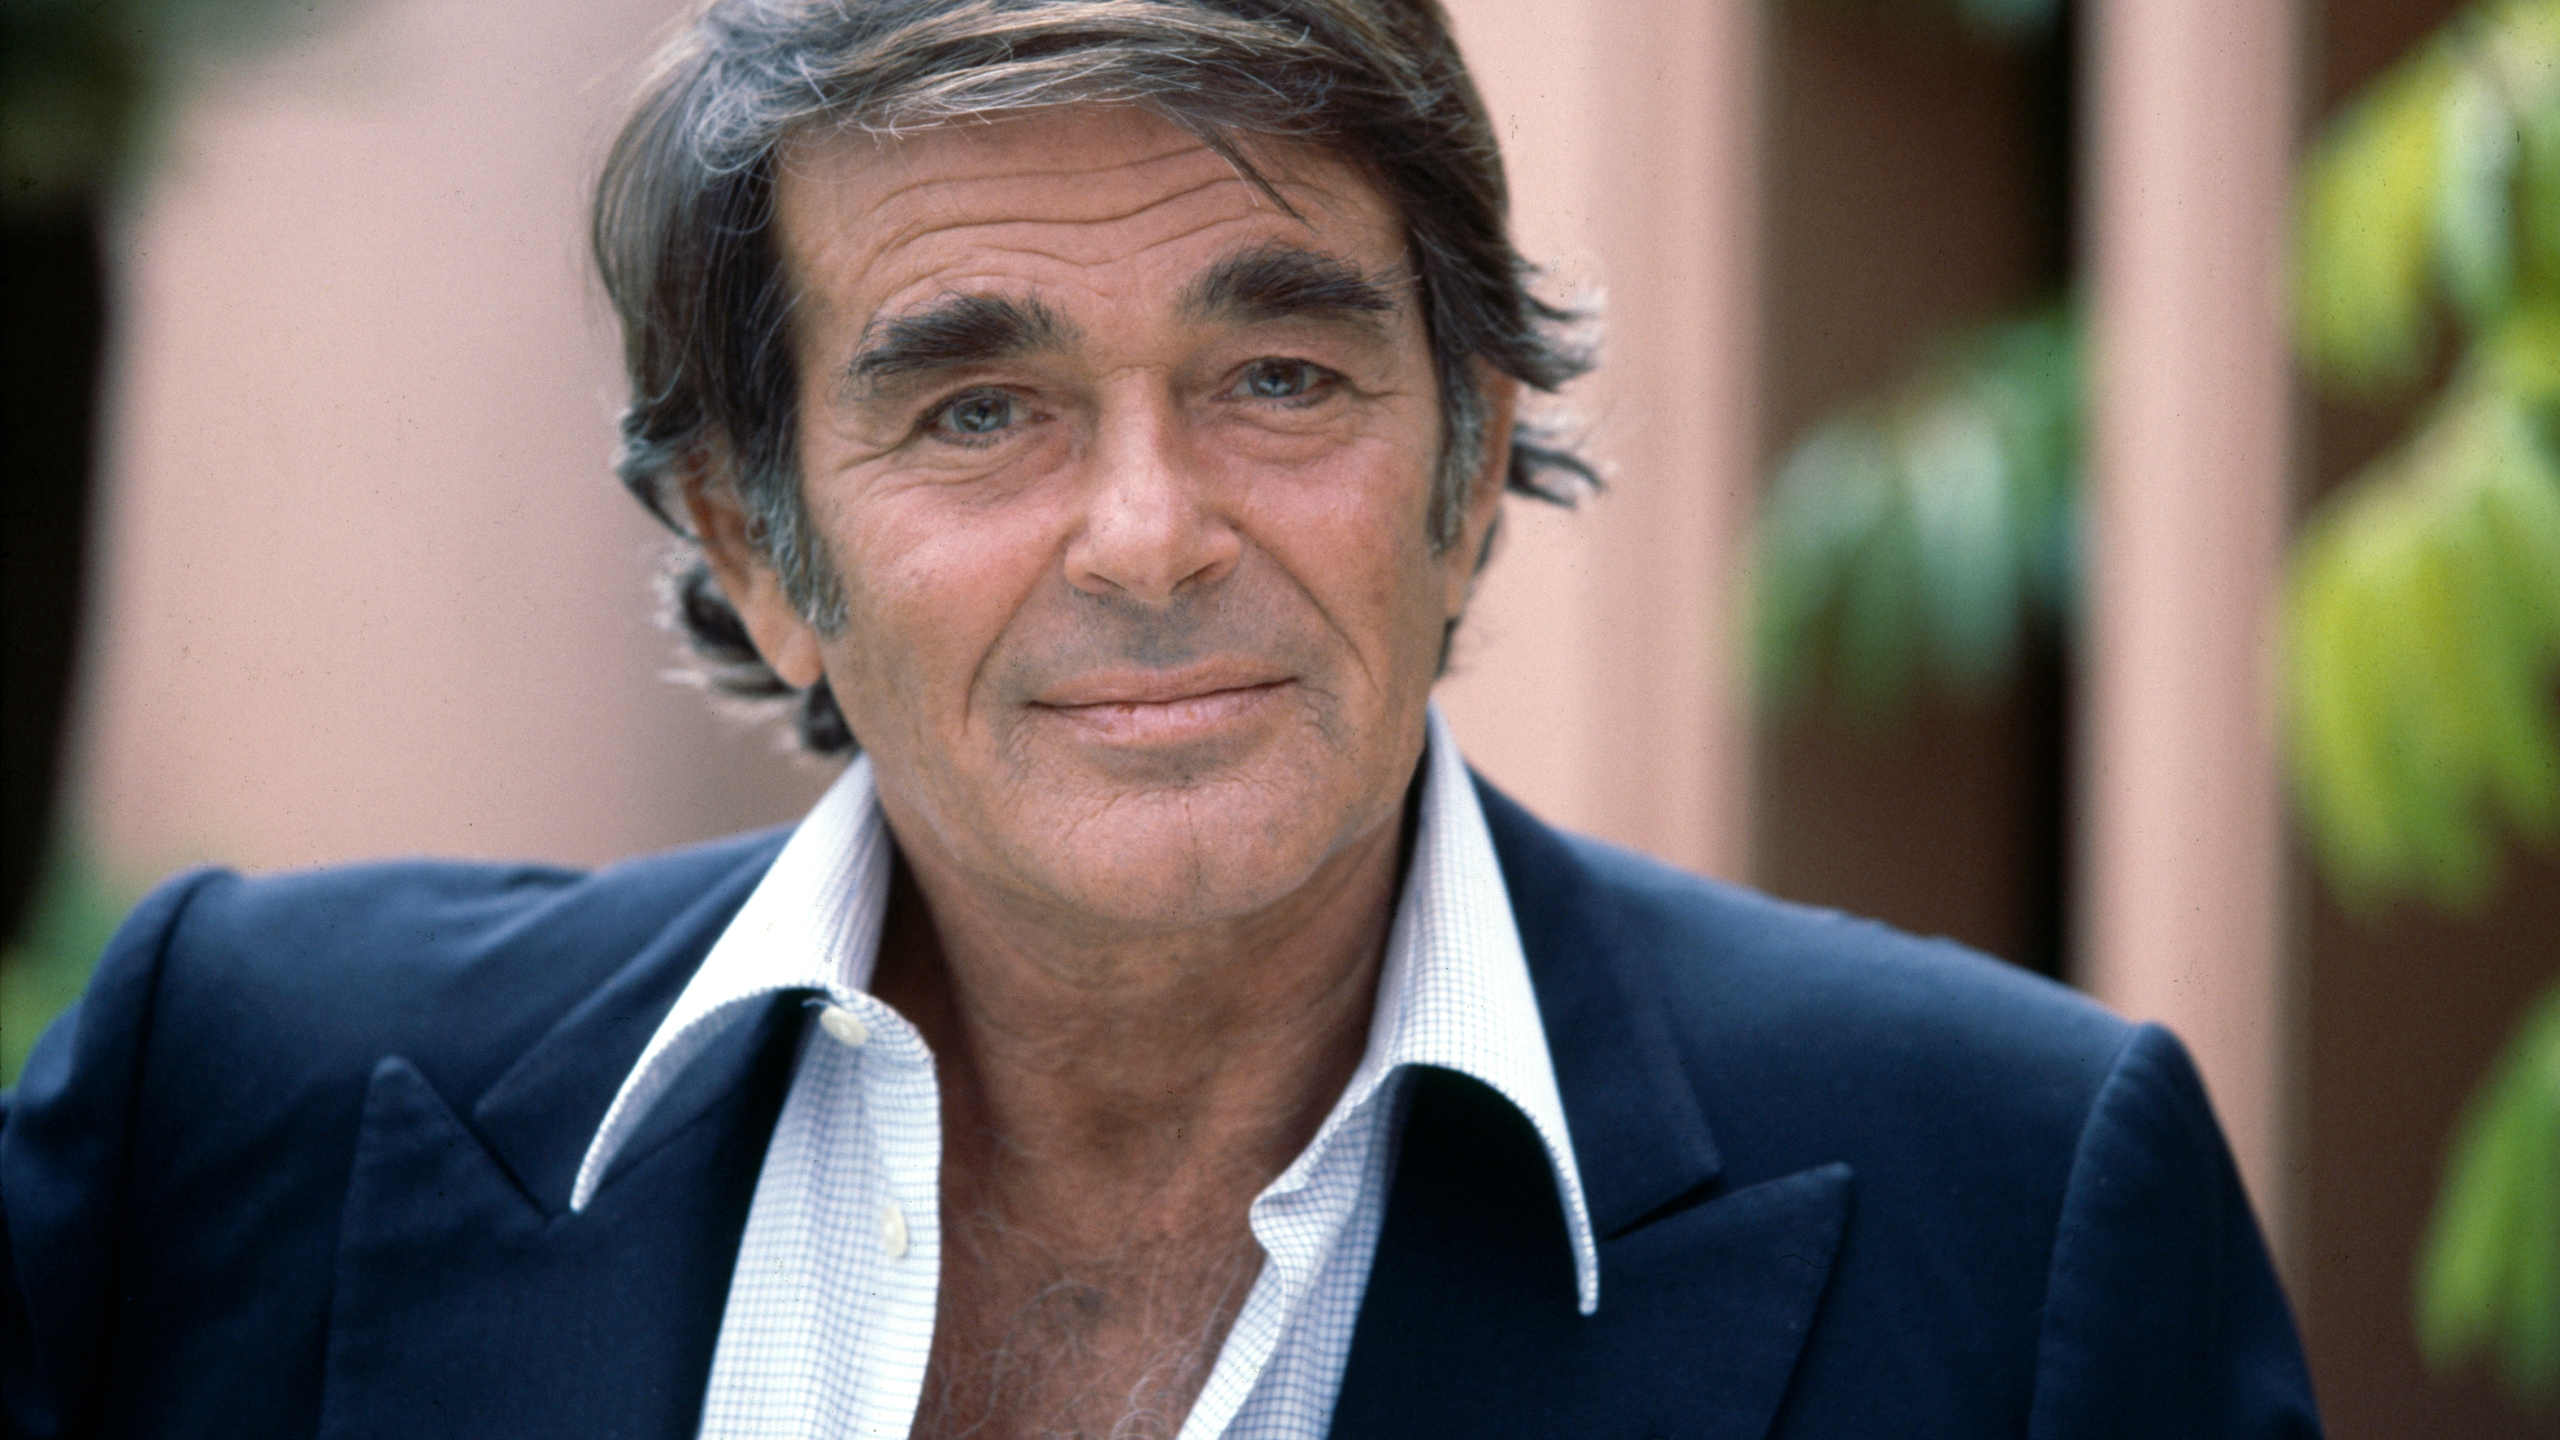 Stuart Whitman appears in a photo taken sometime during the 1970s. (CBS via Getty Images)